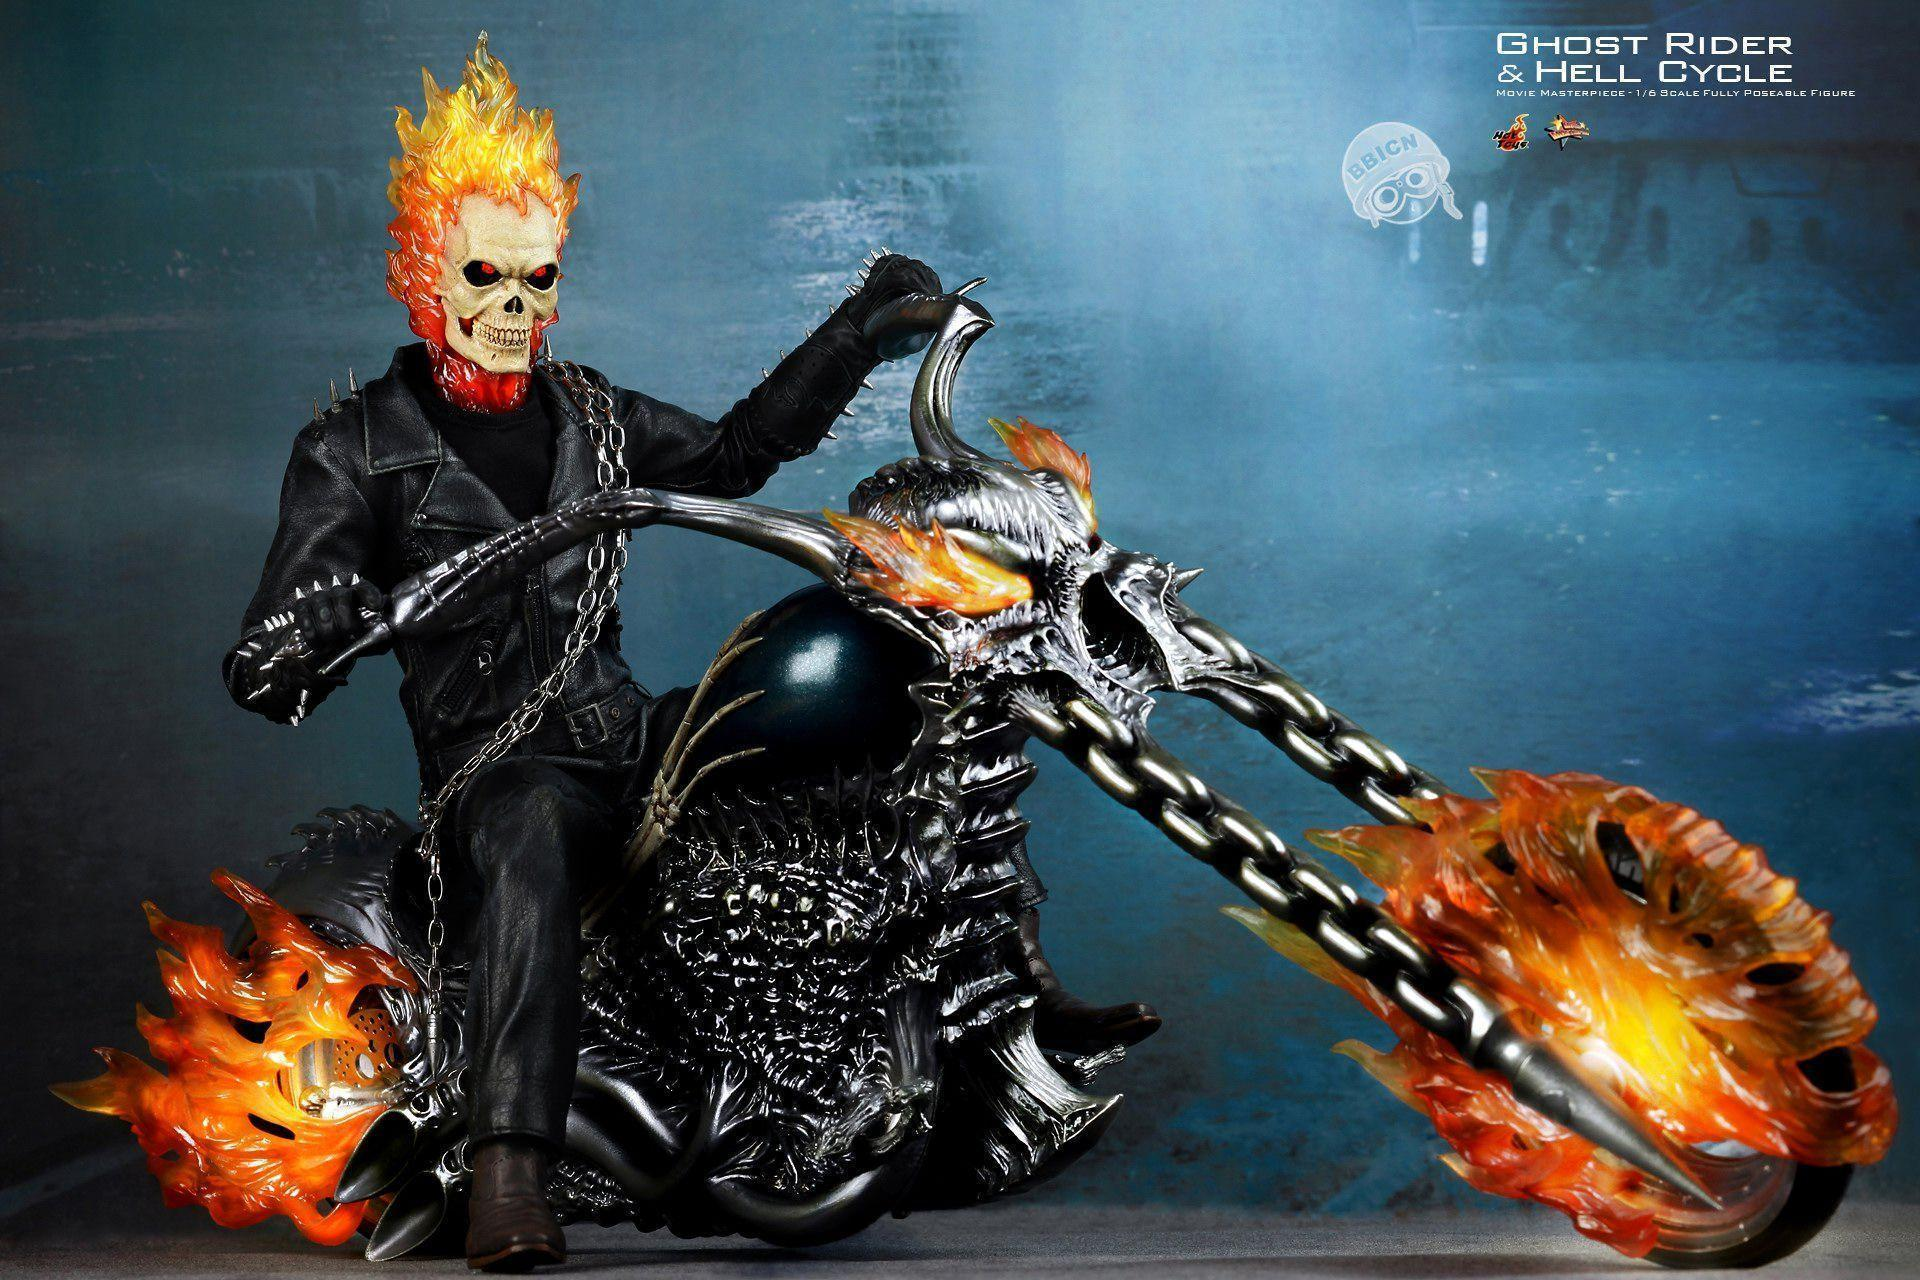 Ghost Rider Bike Wallpapers 1920x1280